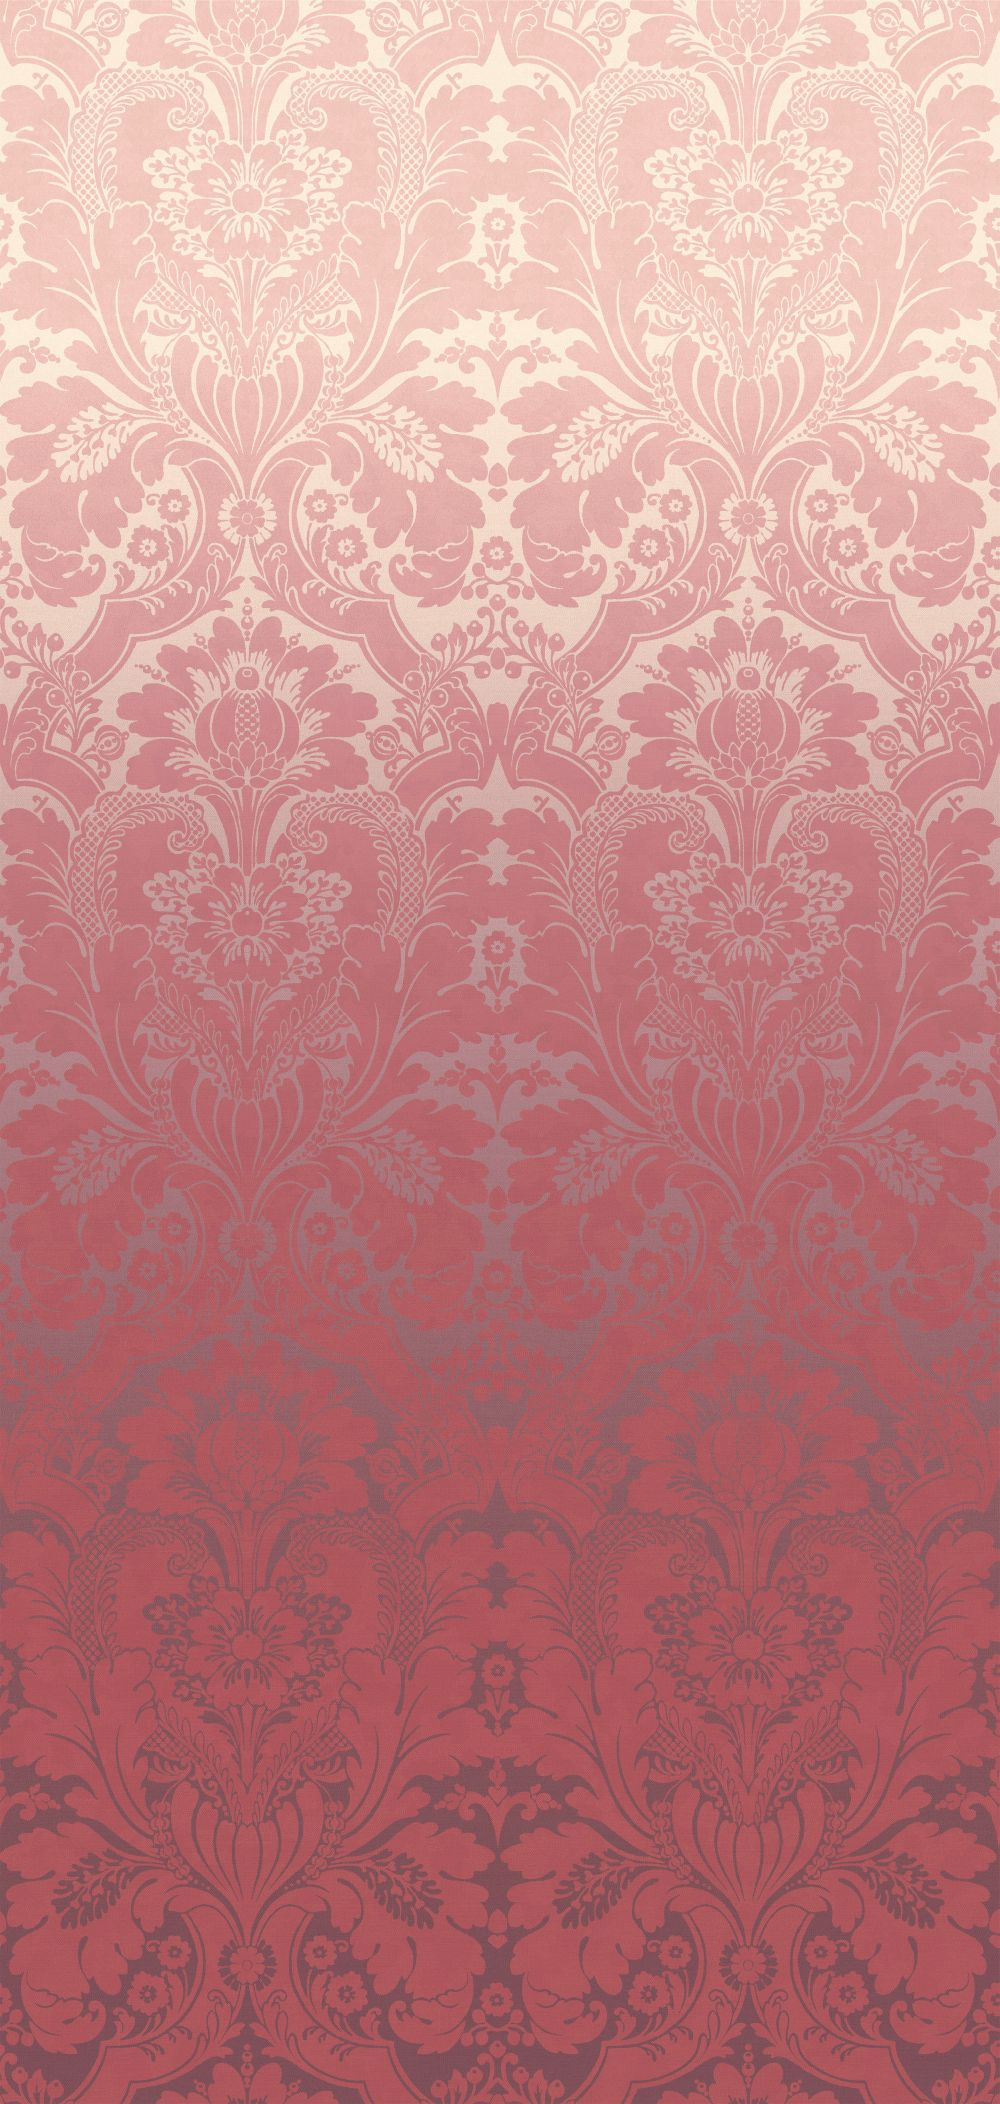 St James's Park Mural - Cherry Fade - by Little Greene